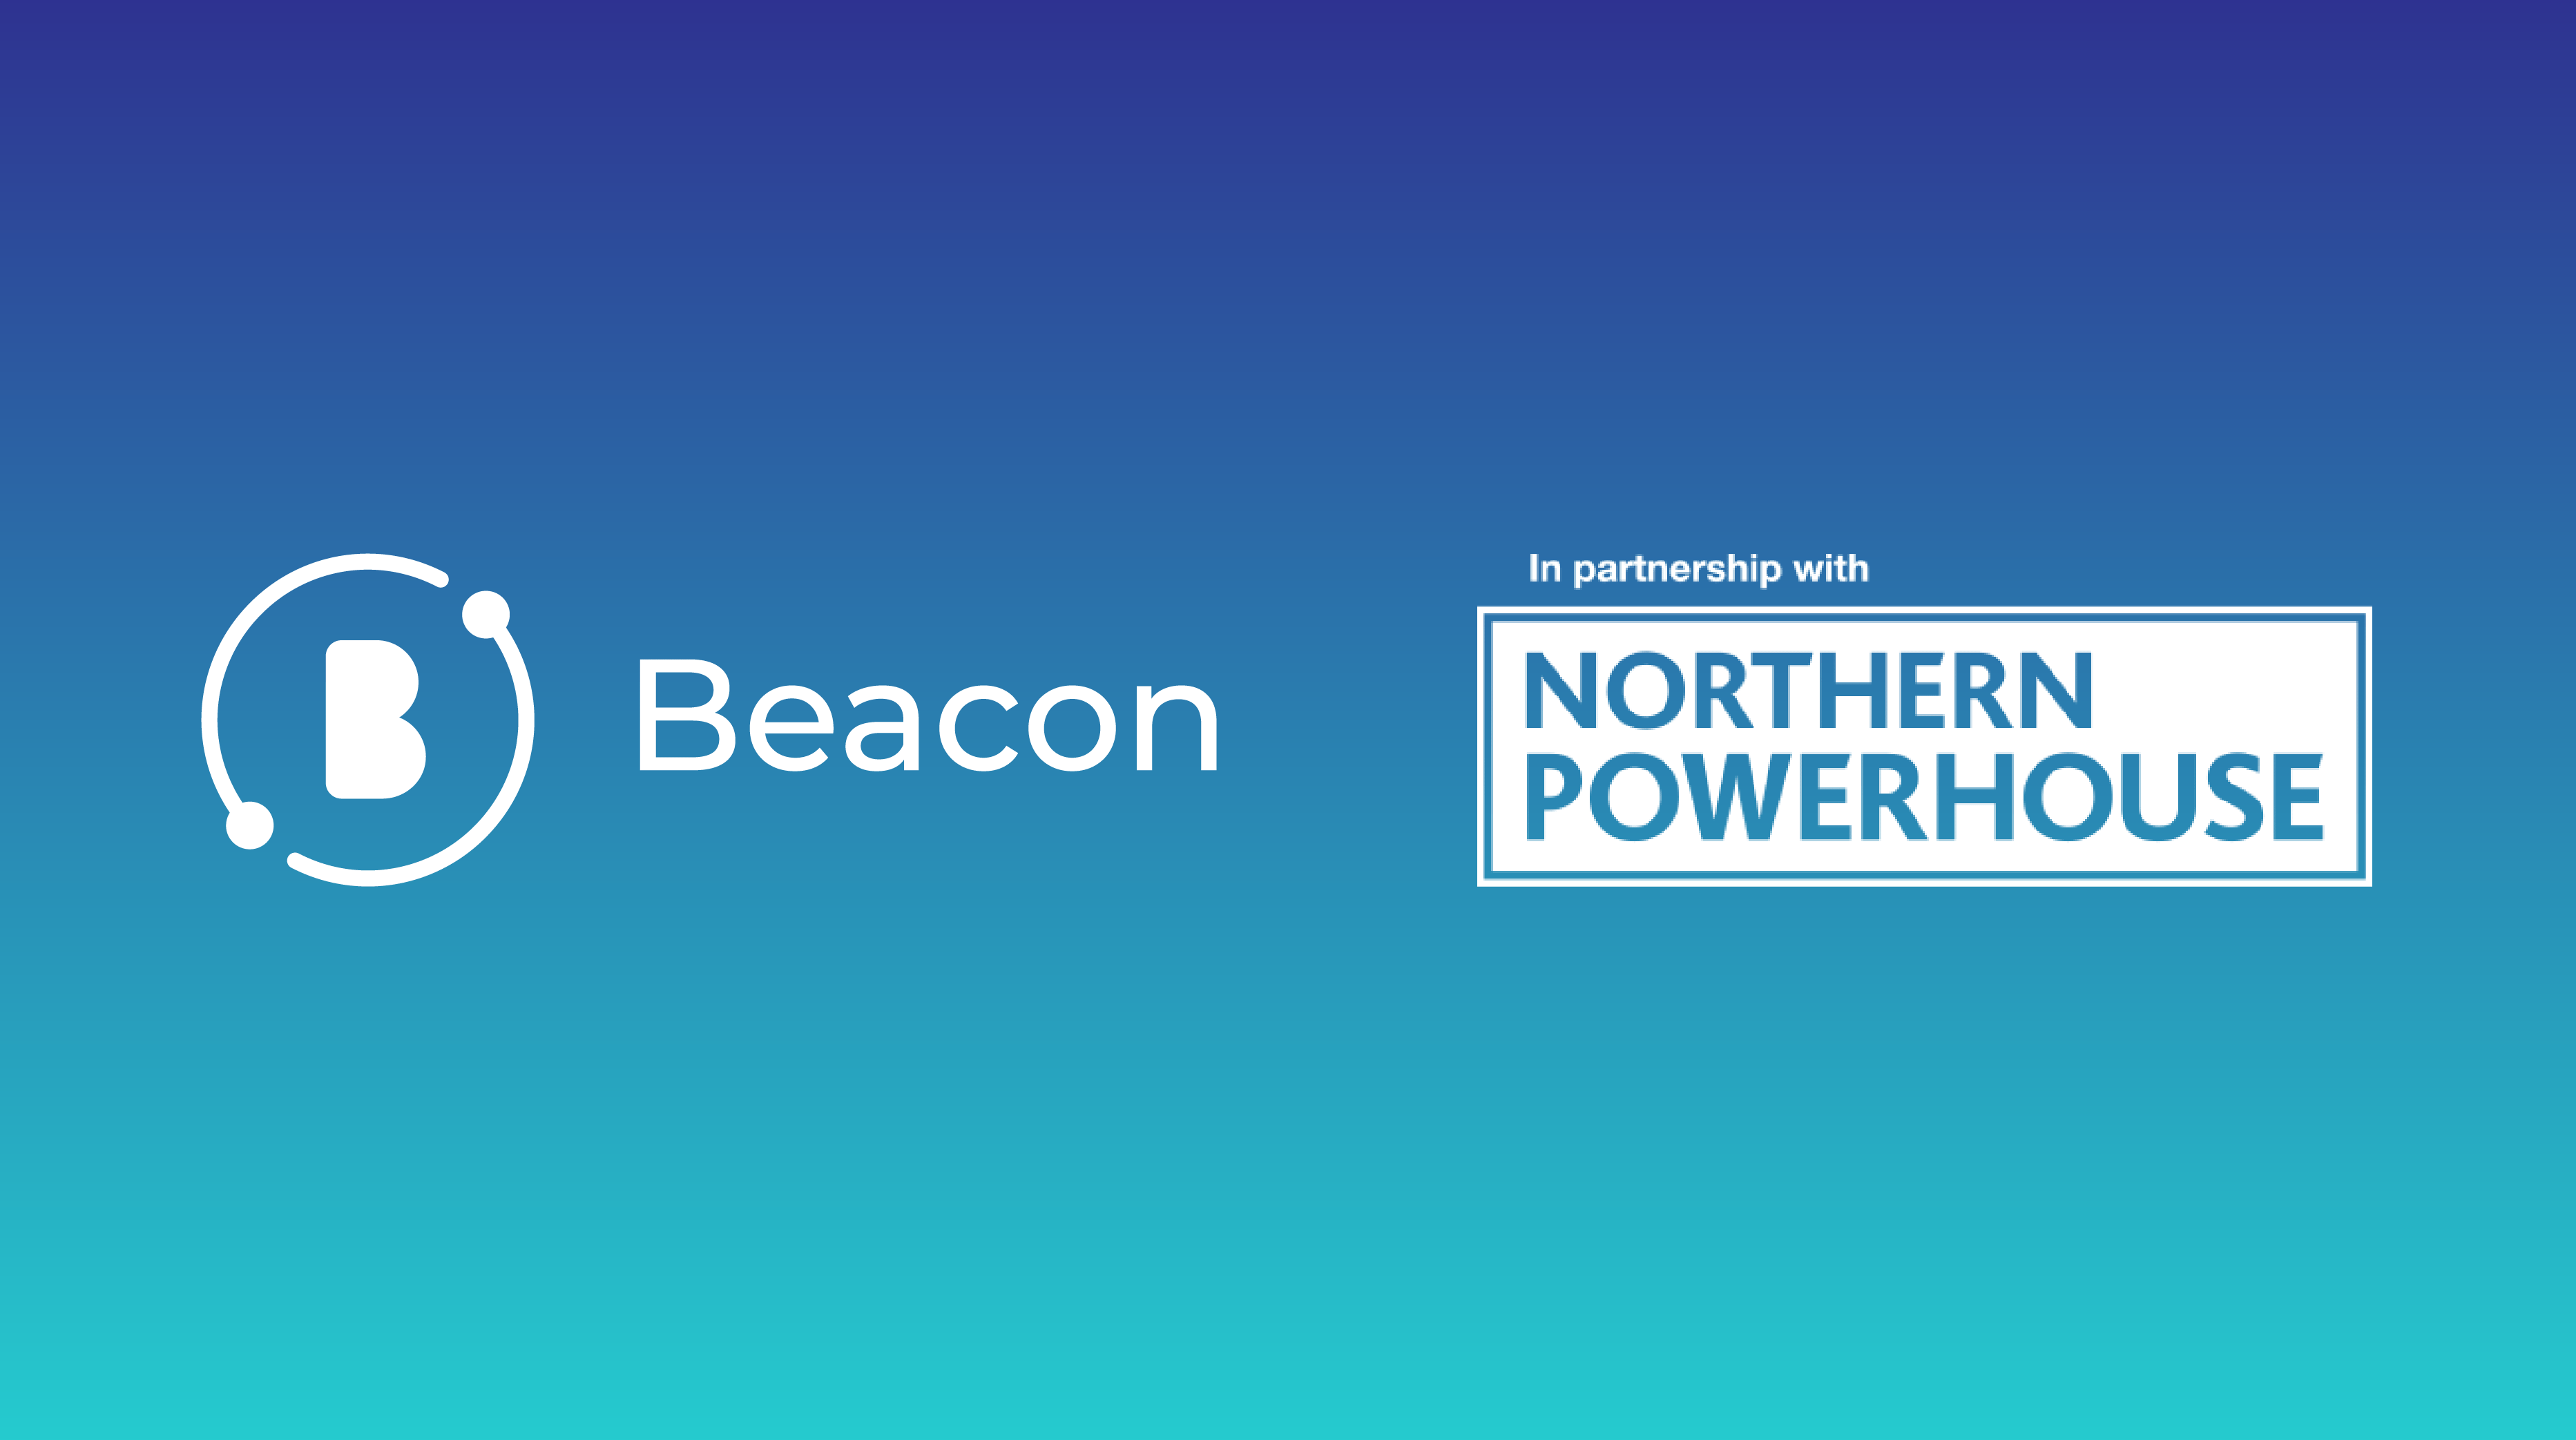 Beacon Gains Business Boost As Northern Powerhouse Member